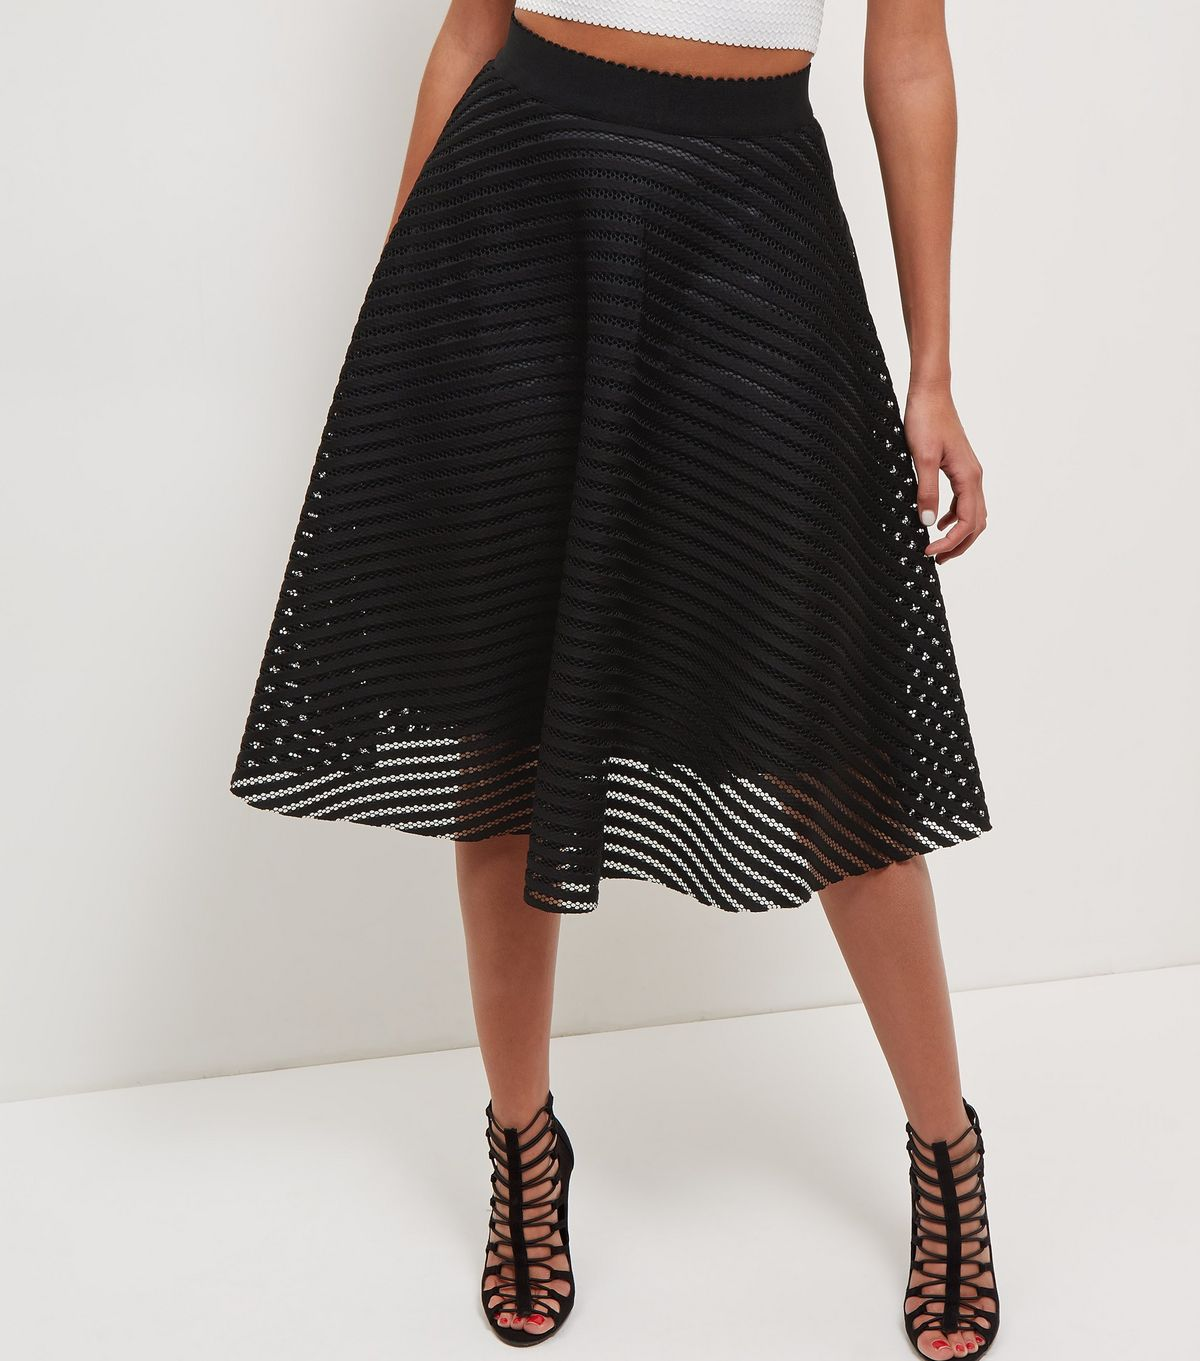 Black Mesh Stripe Midi Skirt £27.99 Click to visit New Look